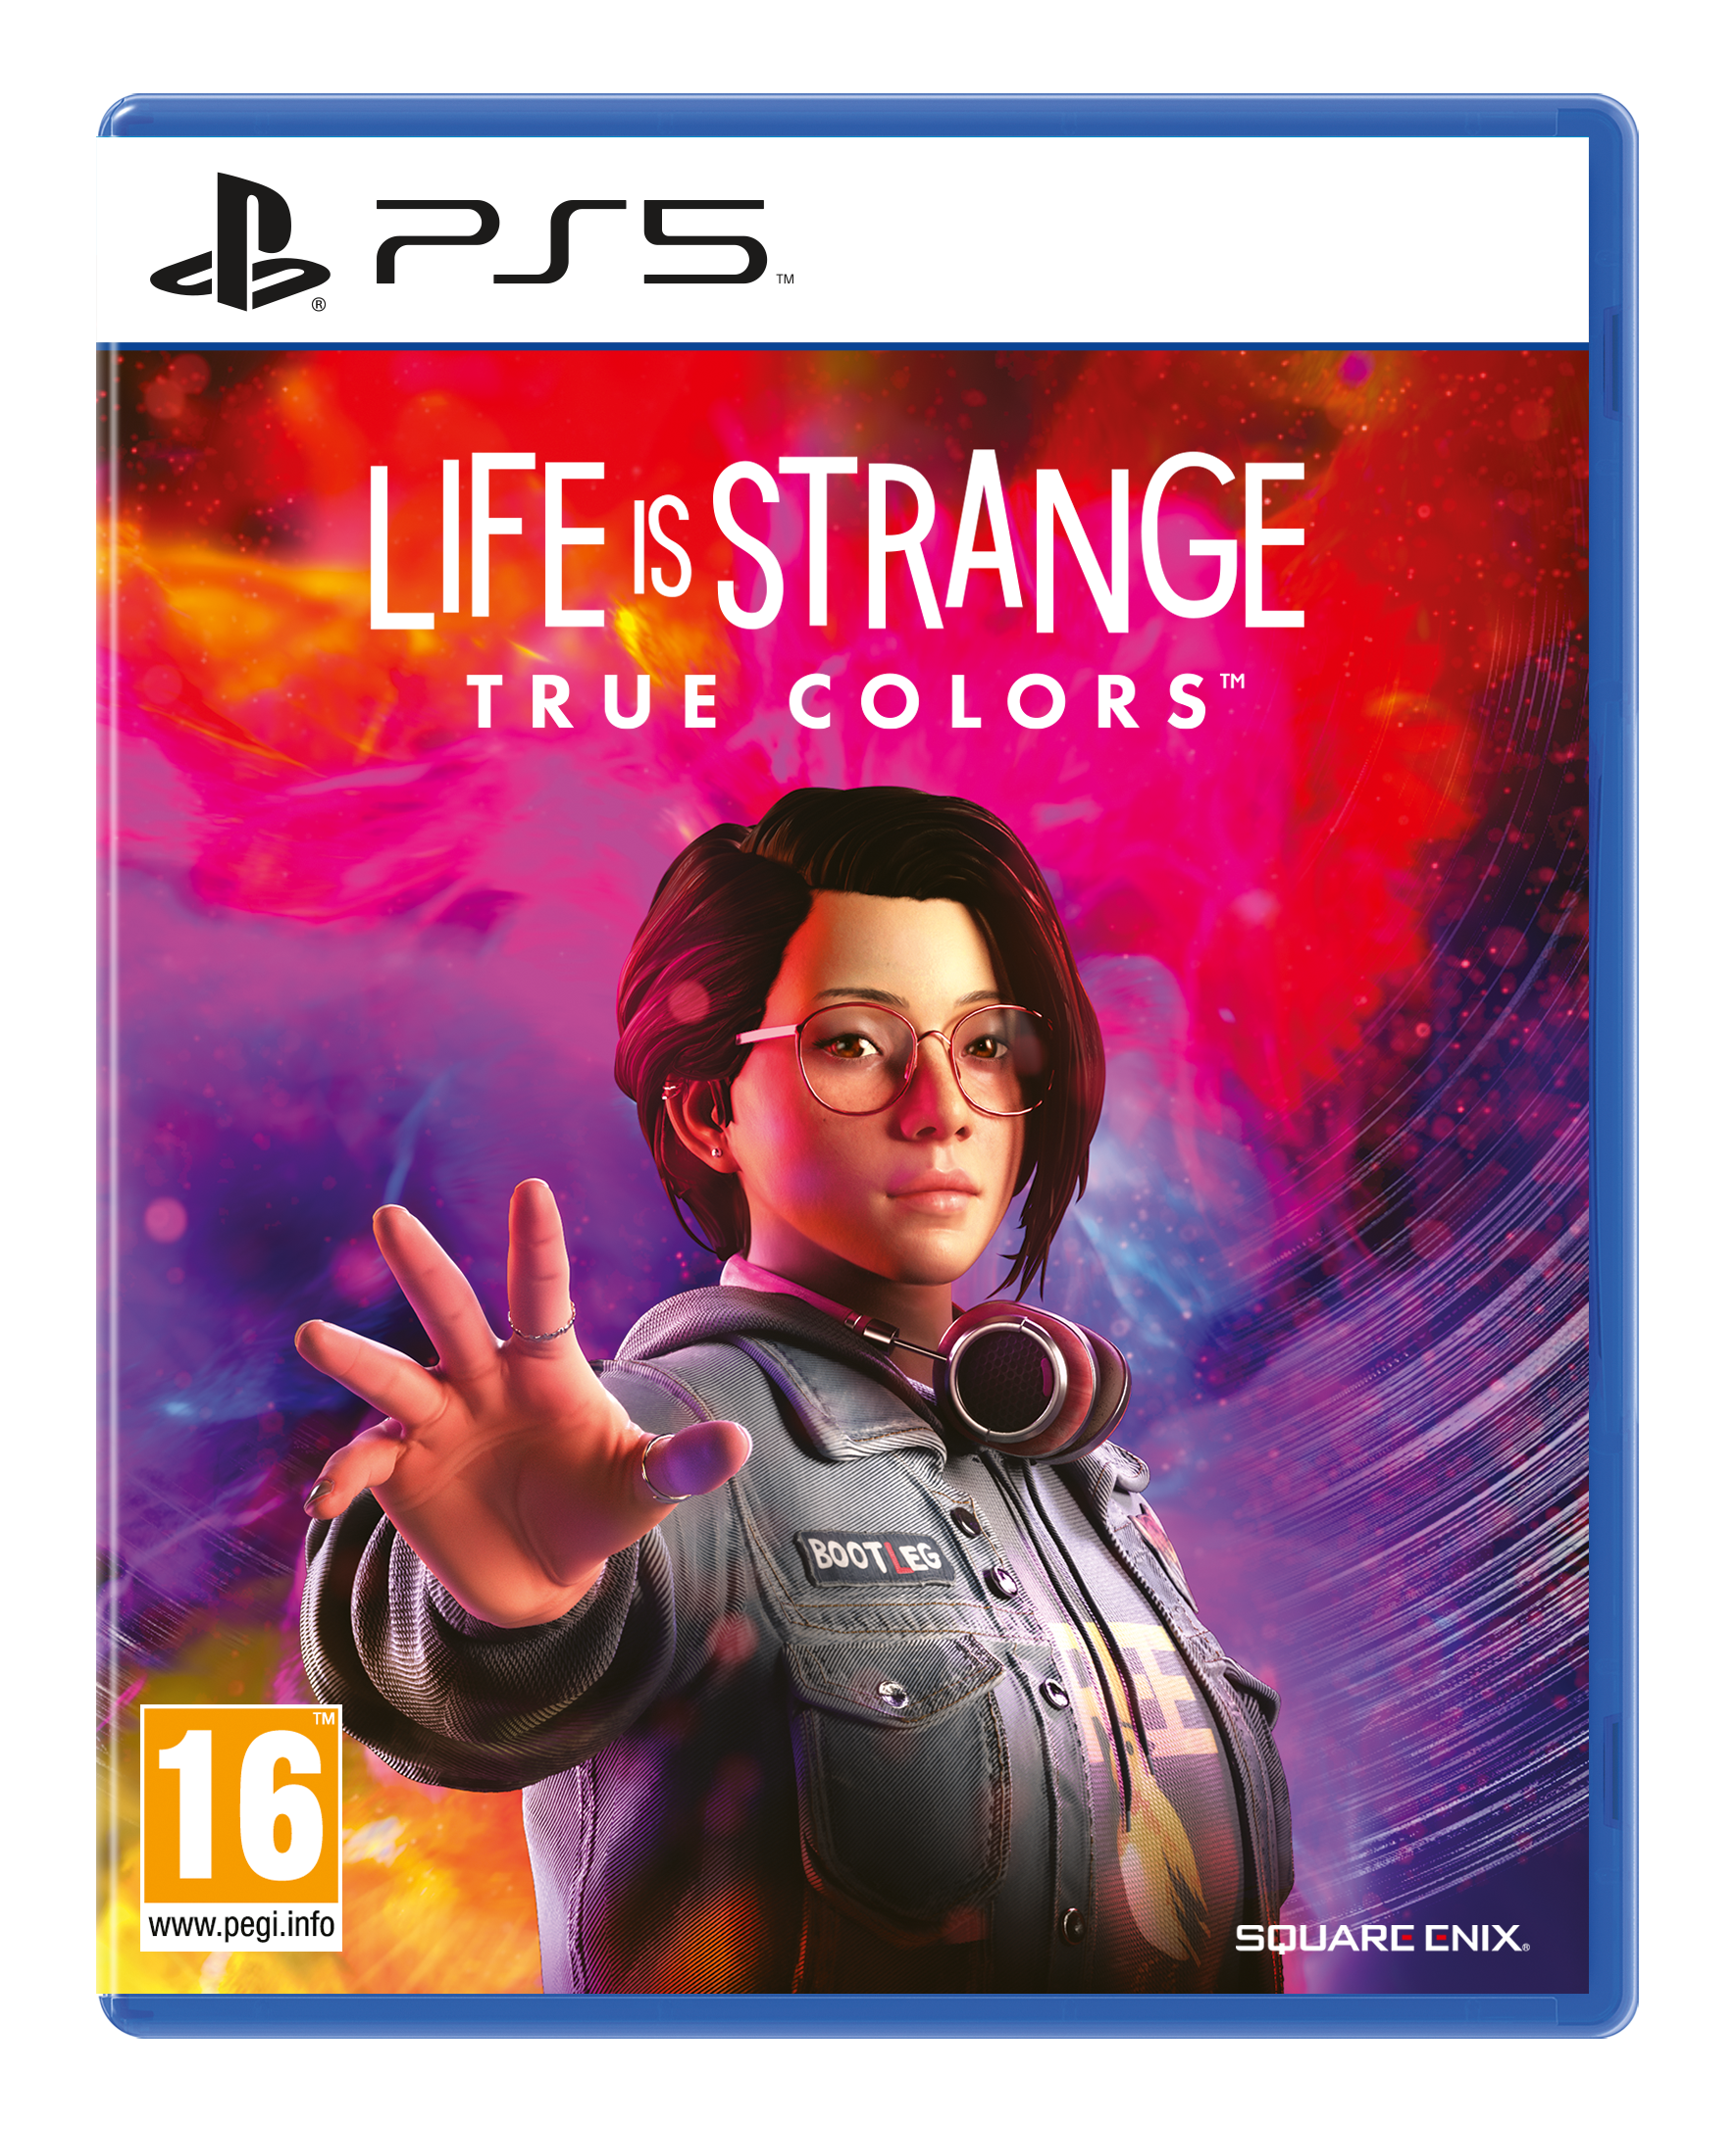 Life is Strange: True Colors with Steelbook (PS5)